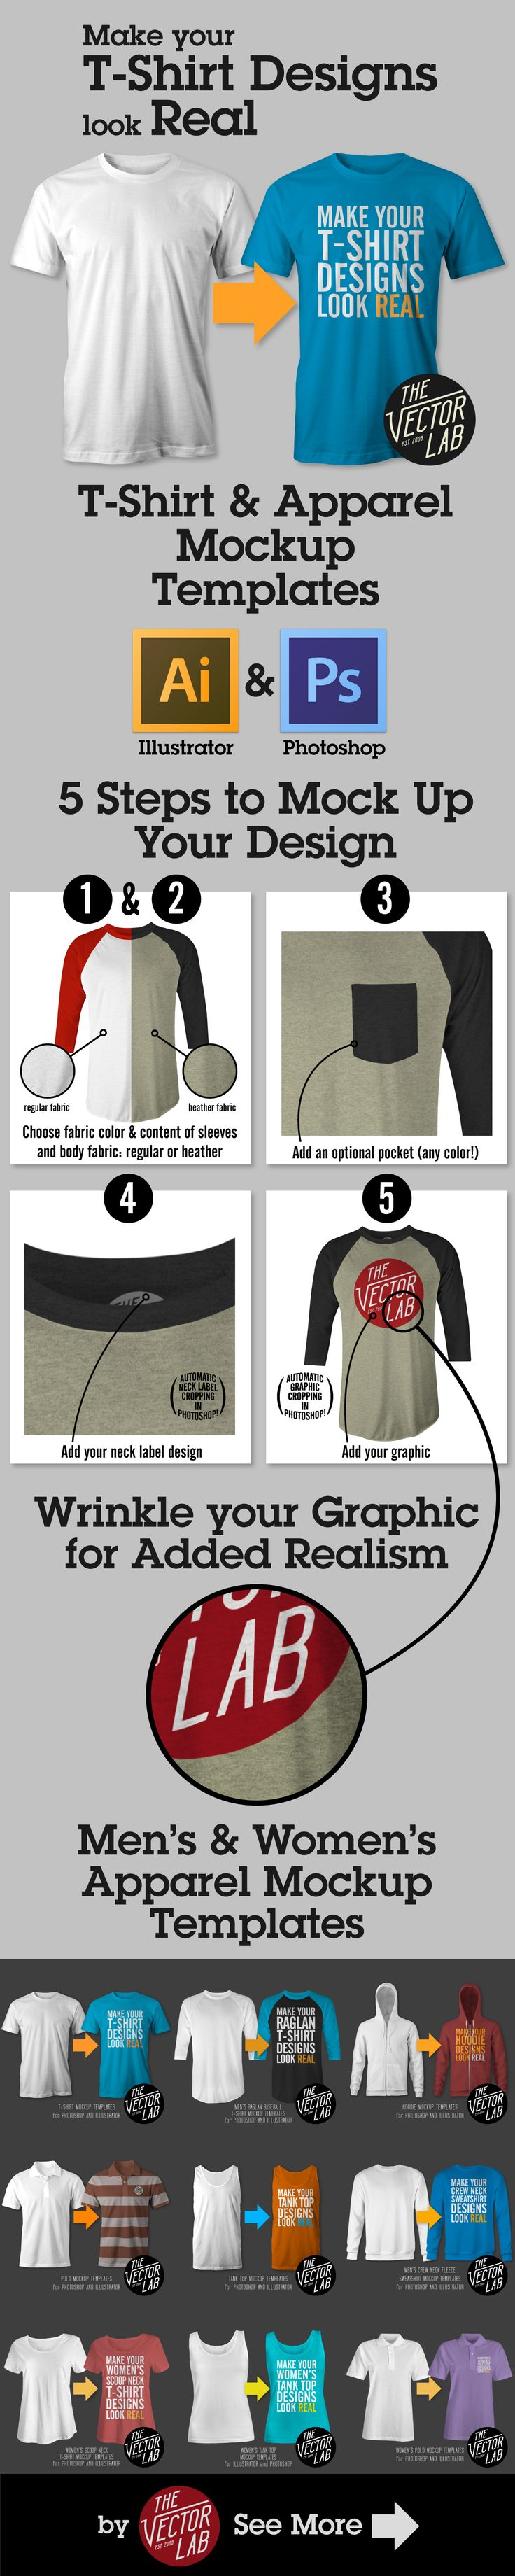 T-Shirt Mockup Templates for Photoshop and Illustrator http://thevectorlab.com/collections/mens-apparel-templates